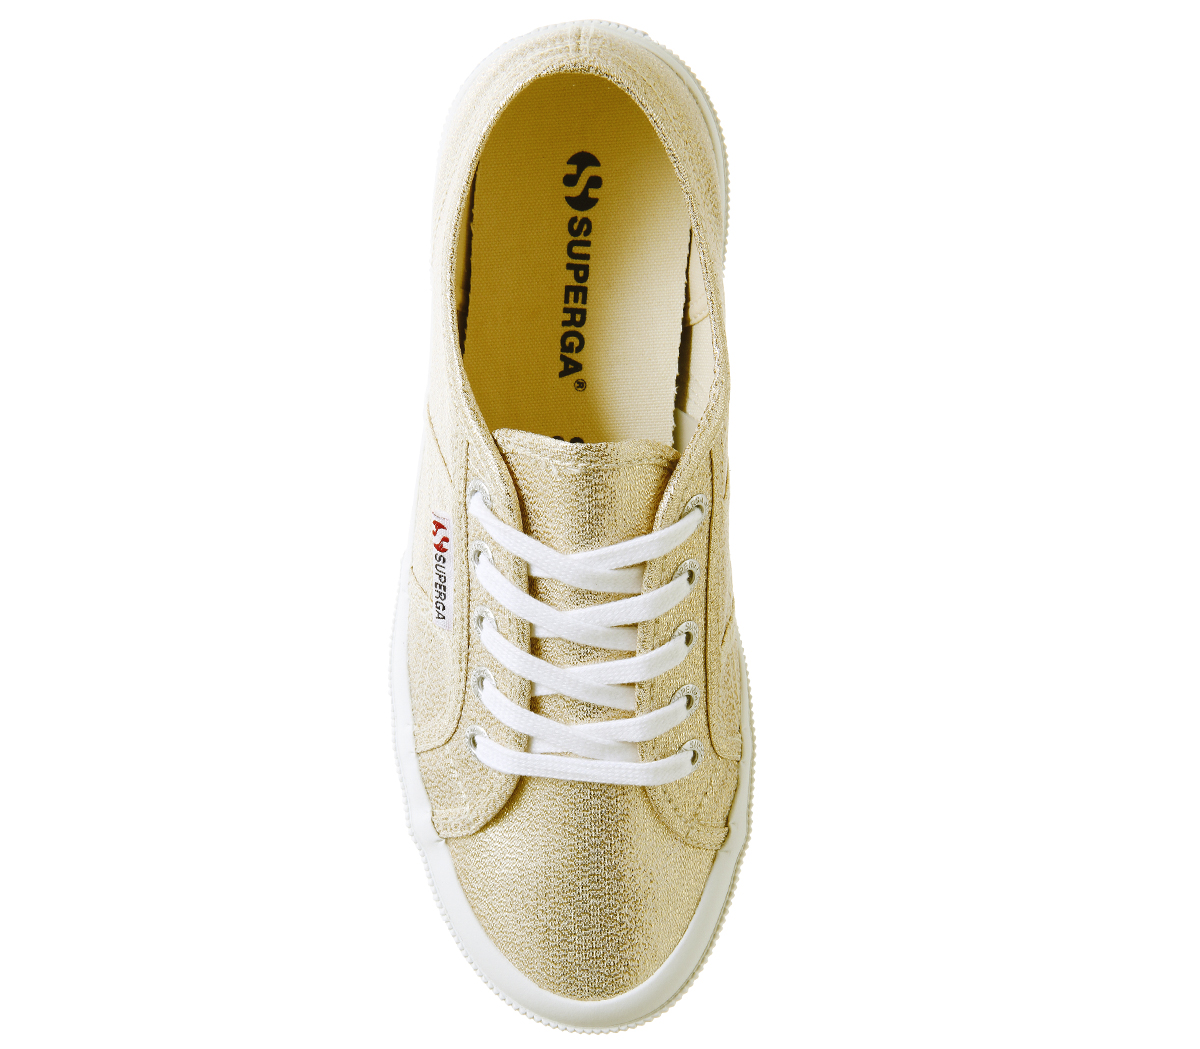 Damenschuhe Superga 2750 Trainers YELLOW GOLD Trainers Schuhes